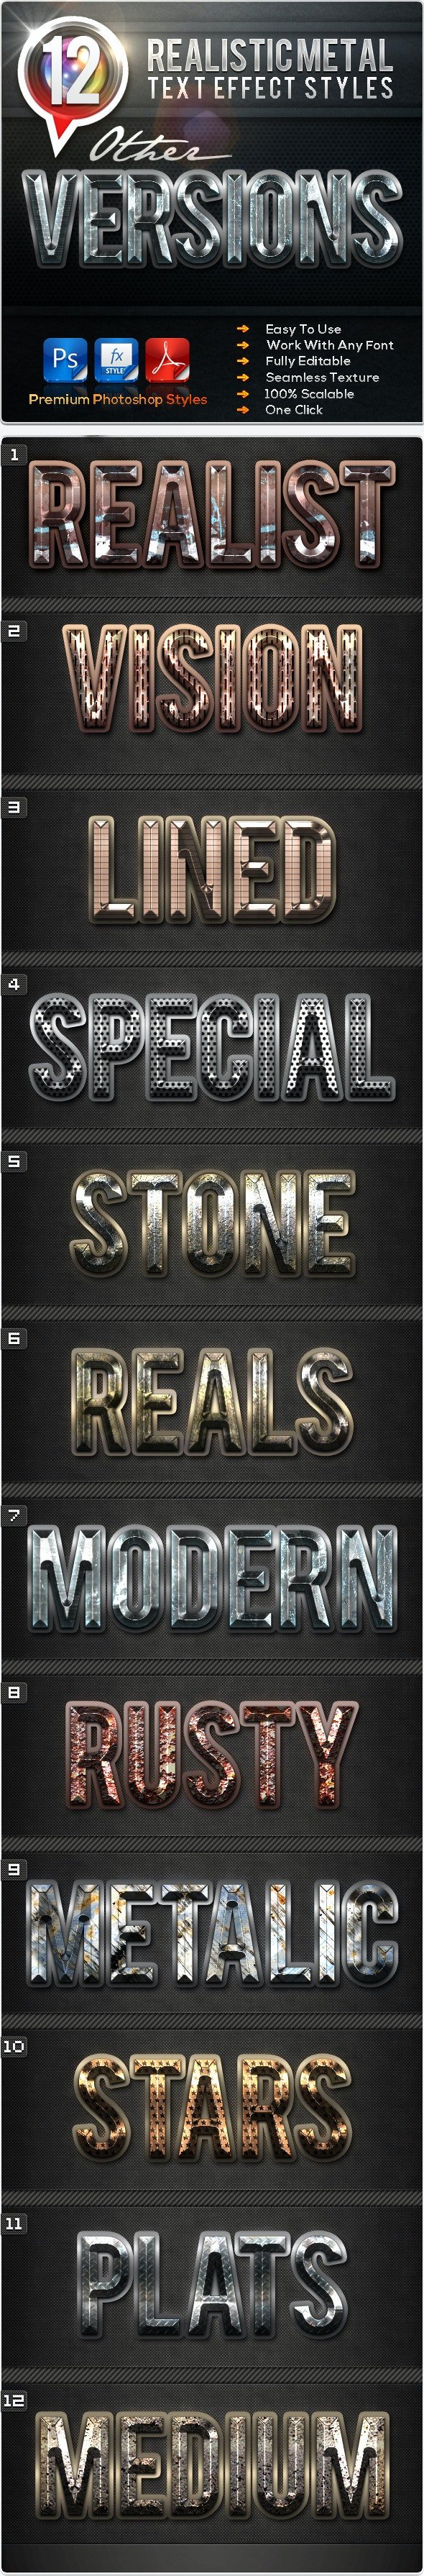 12 Realistic Metal Other Versions - Text Effects Styles